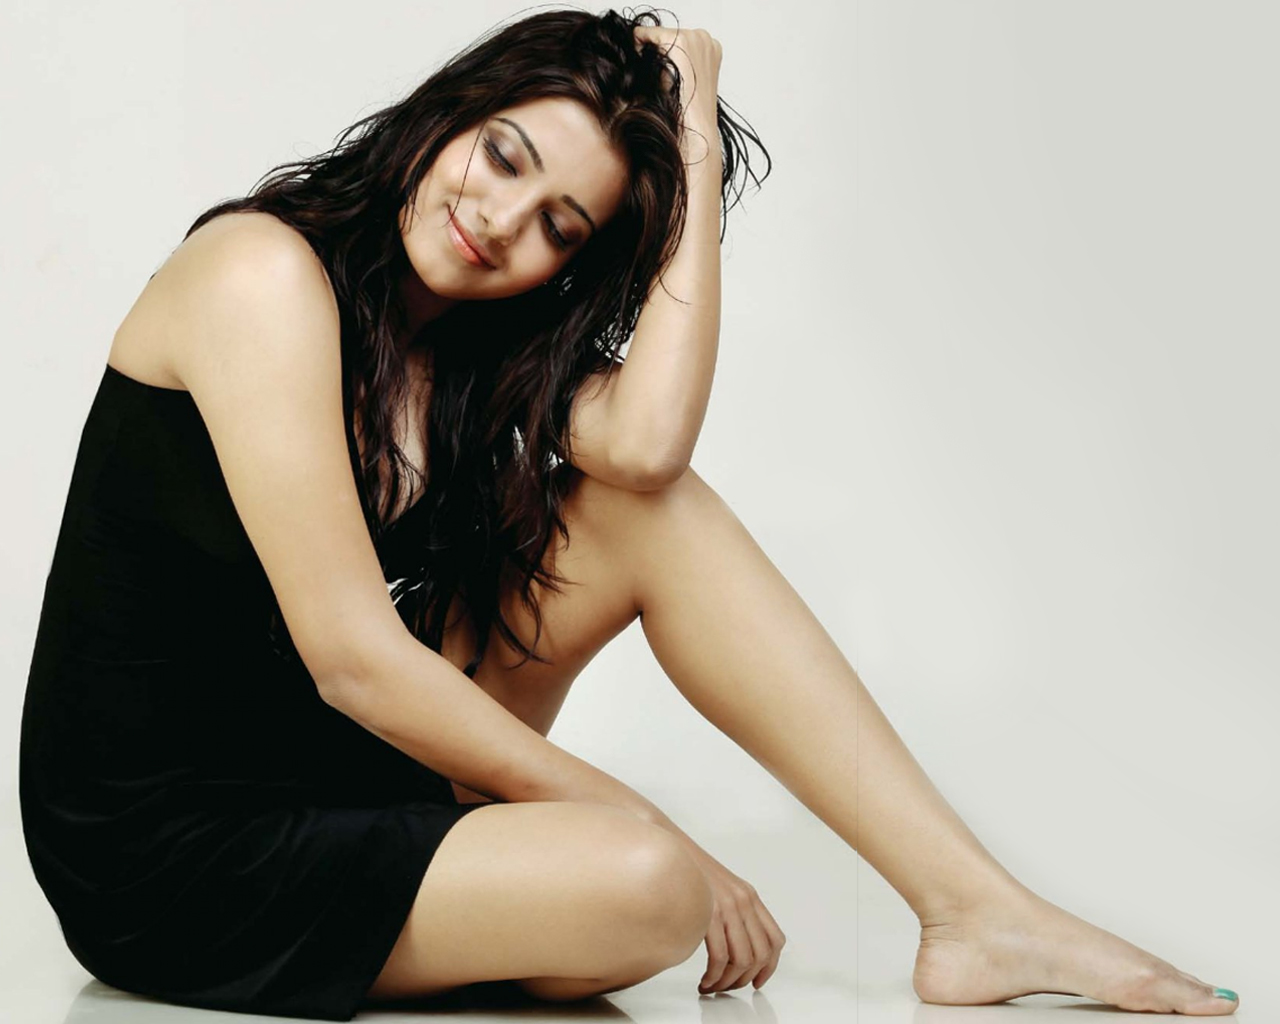 Samantha hot photos old collection 2 | Picture 9